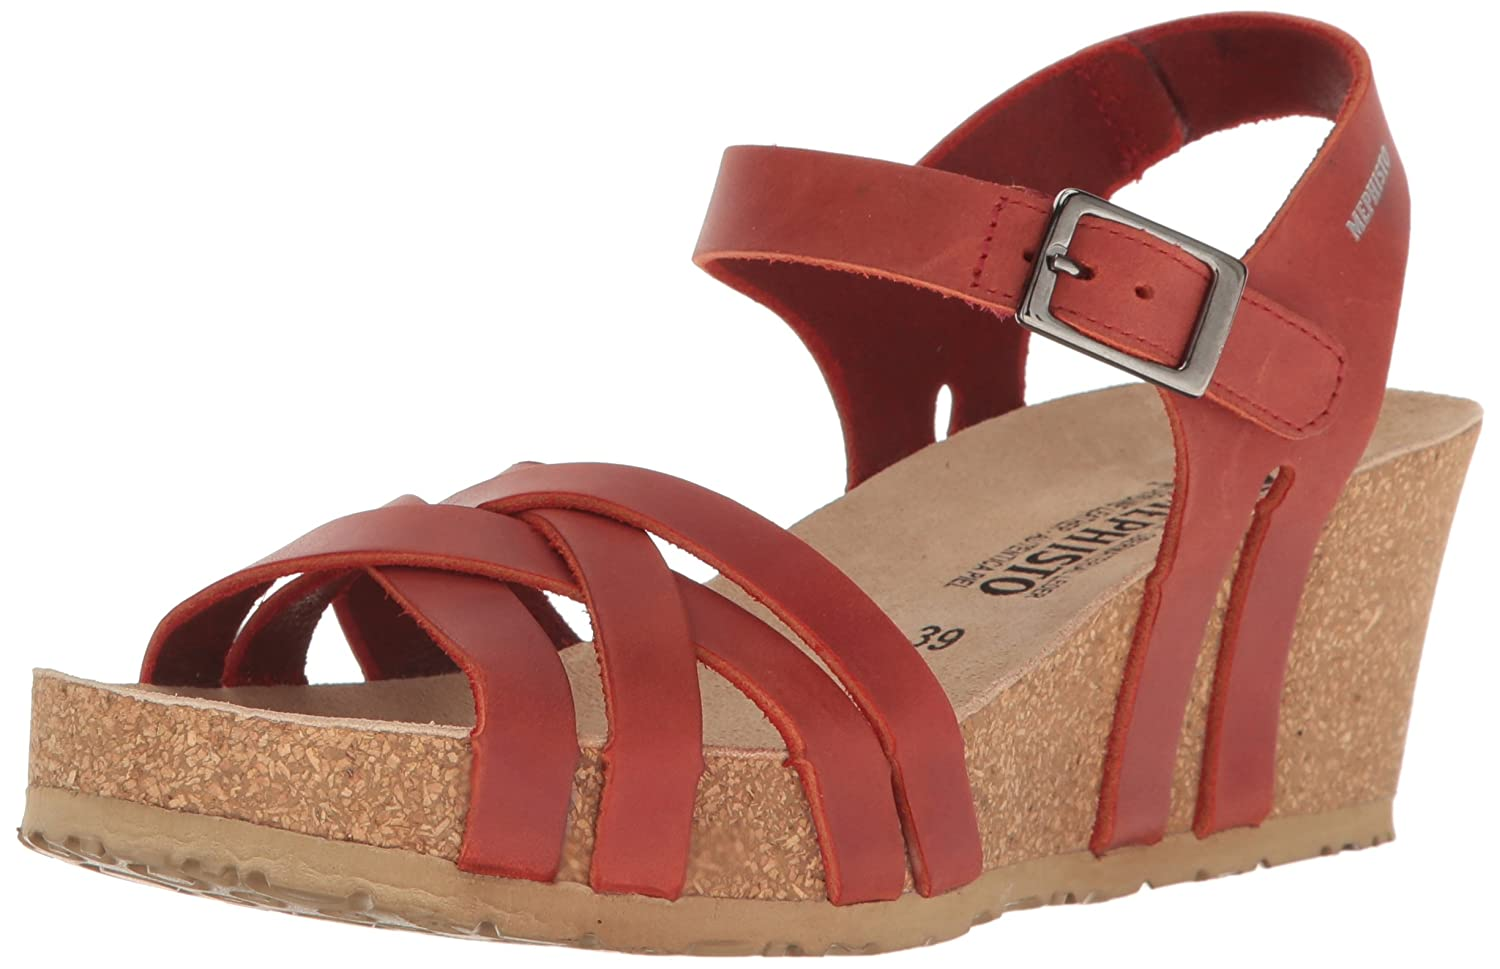 Mephisto Women's Lanny Wedge Sandal B01KYK9L78 5 B(M) US|Red Scratch